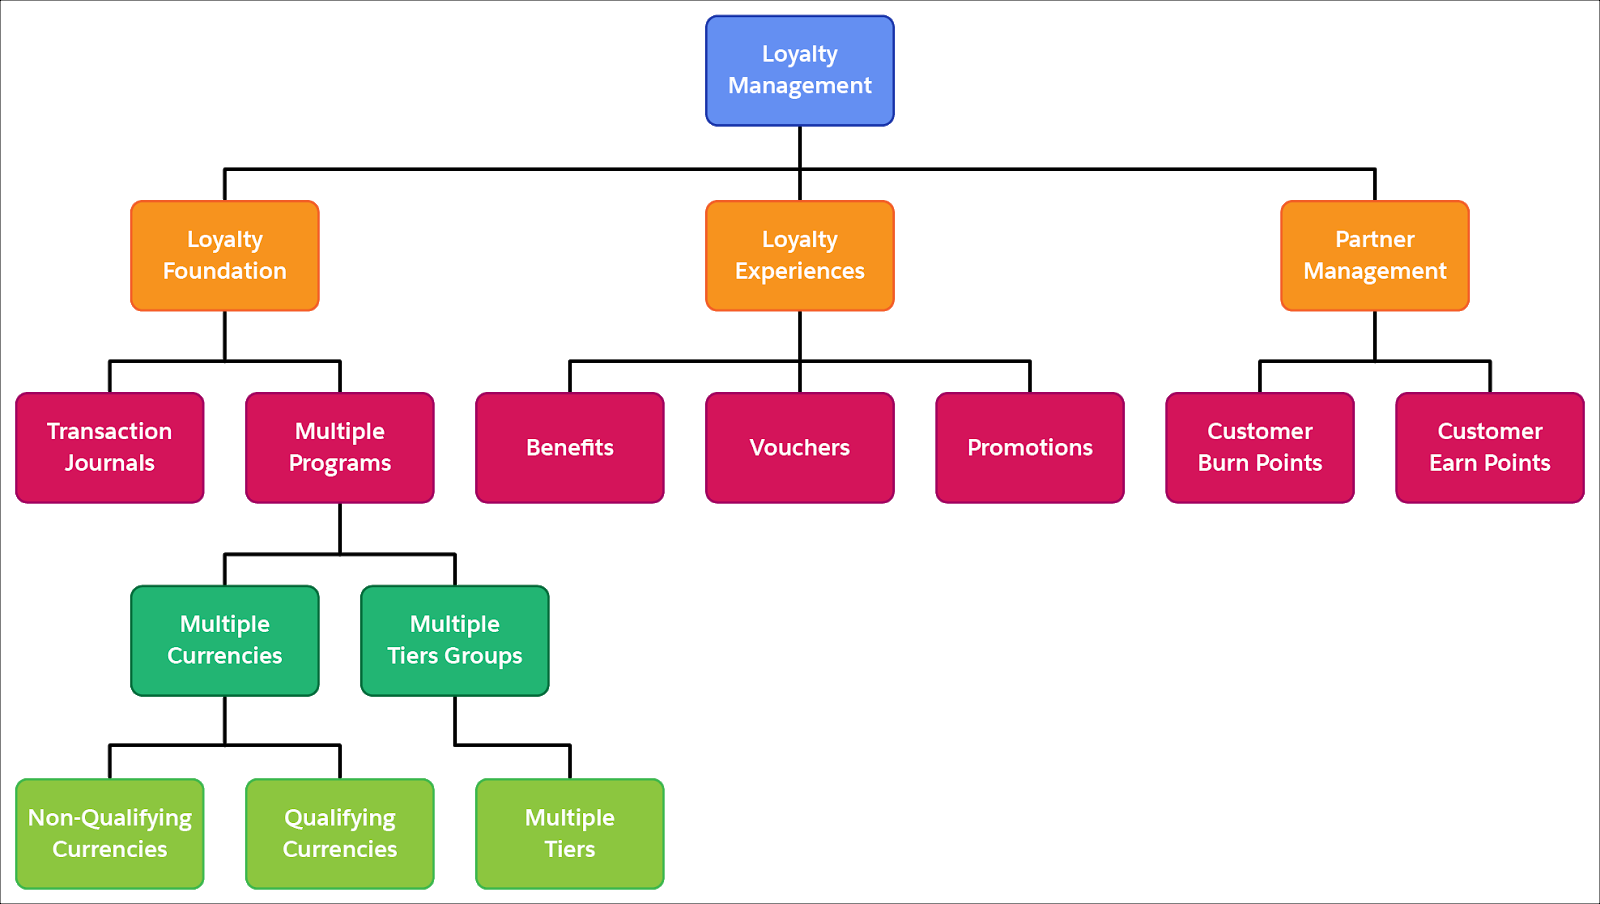 Image showing all the features of Loyalty Management.